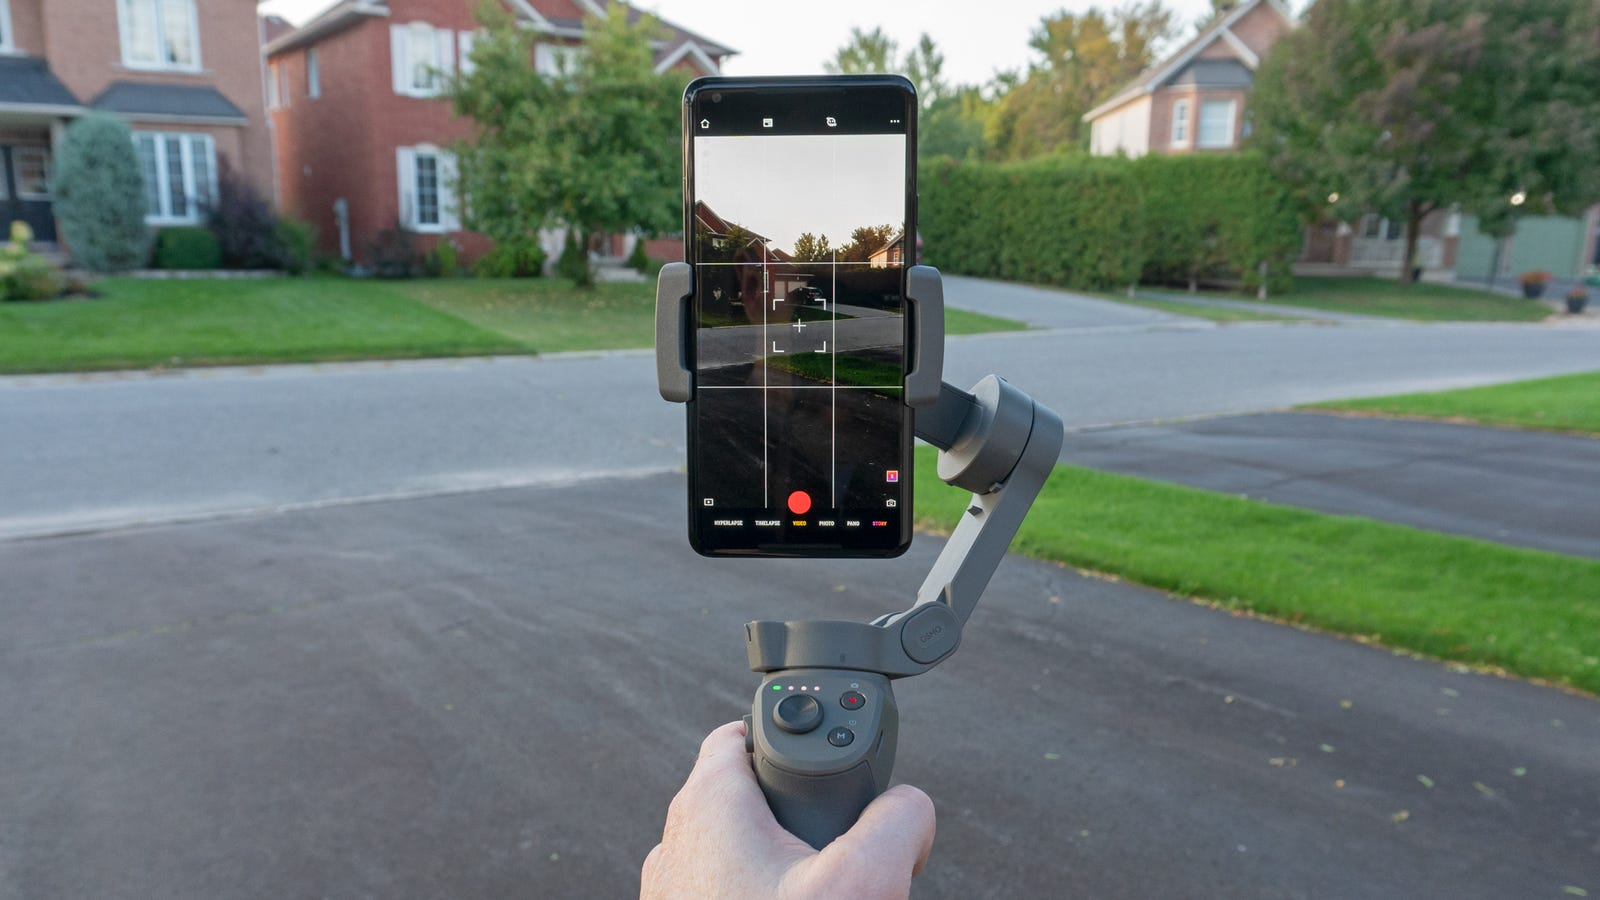 The Osmo 3 can now automatically switch between landscape and portrait orientations thanks to a dedicated motor powering the actual smartphone clamp.